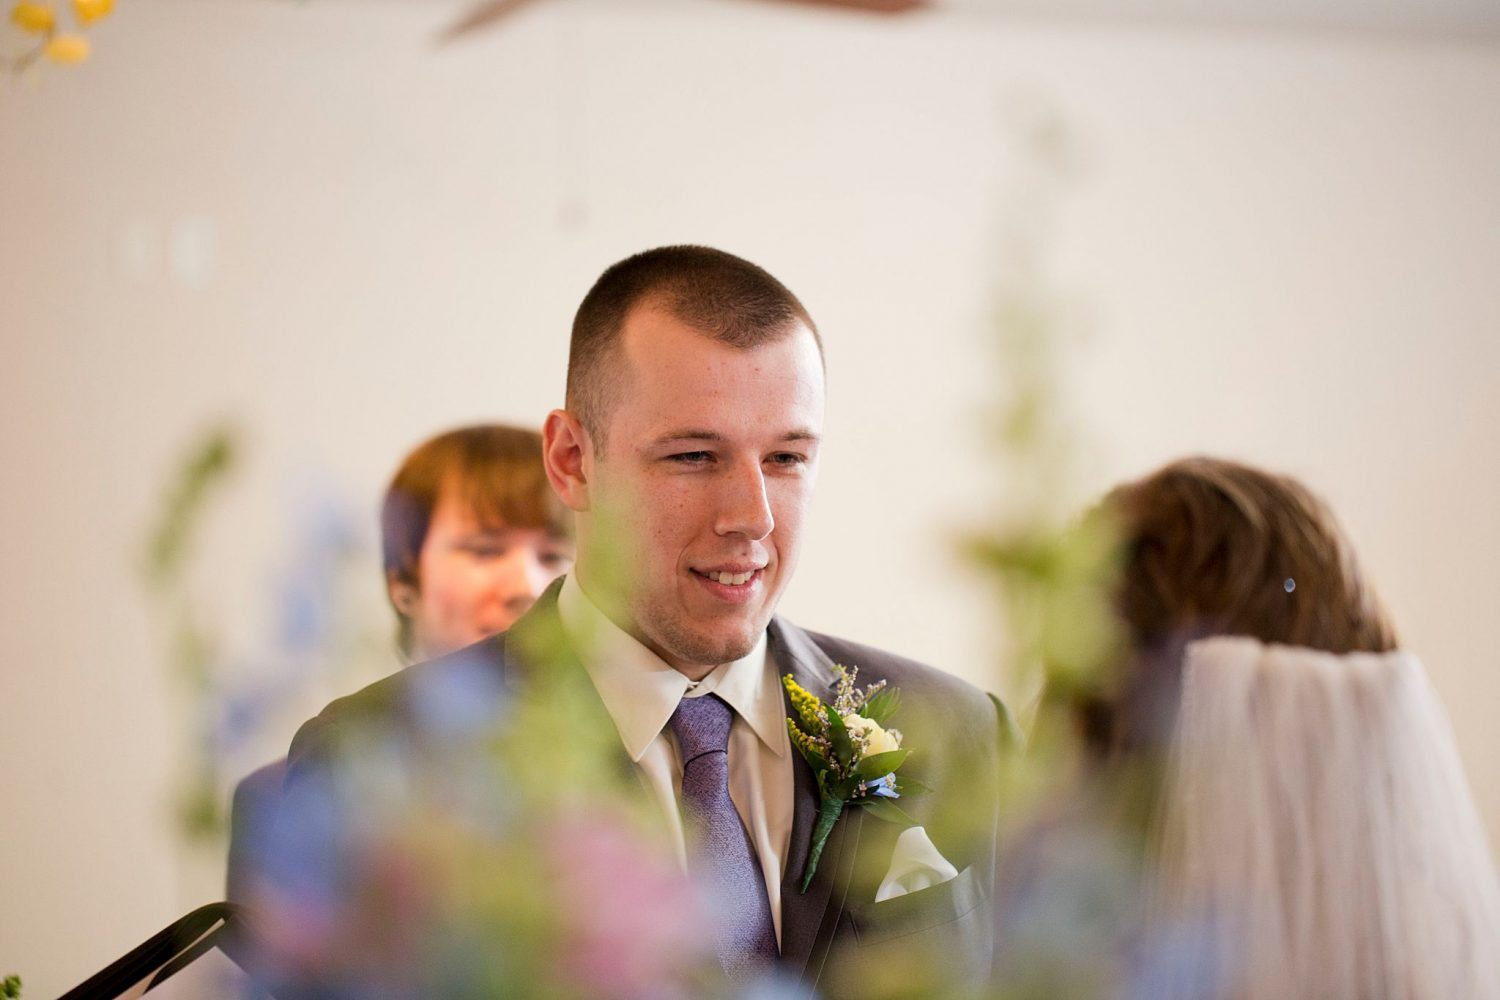 Groom smiles as he says his vows to his bride.